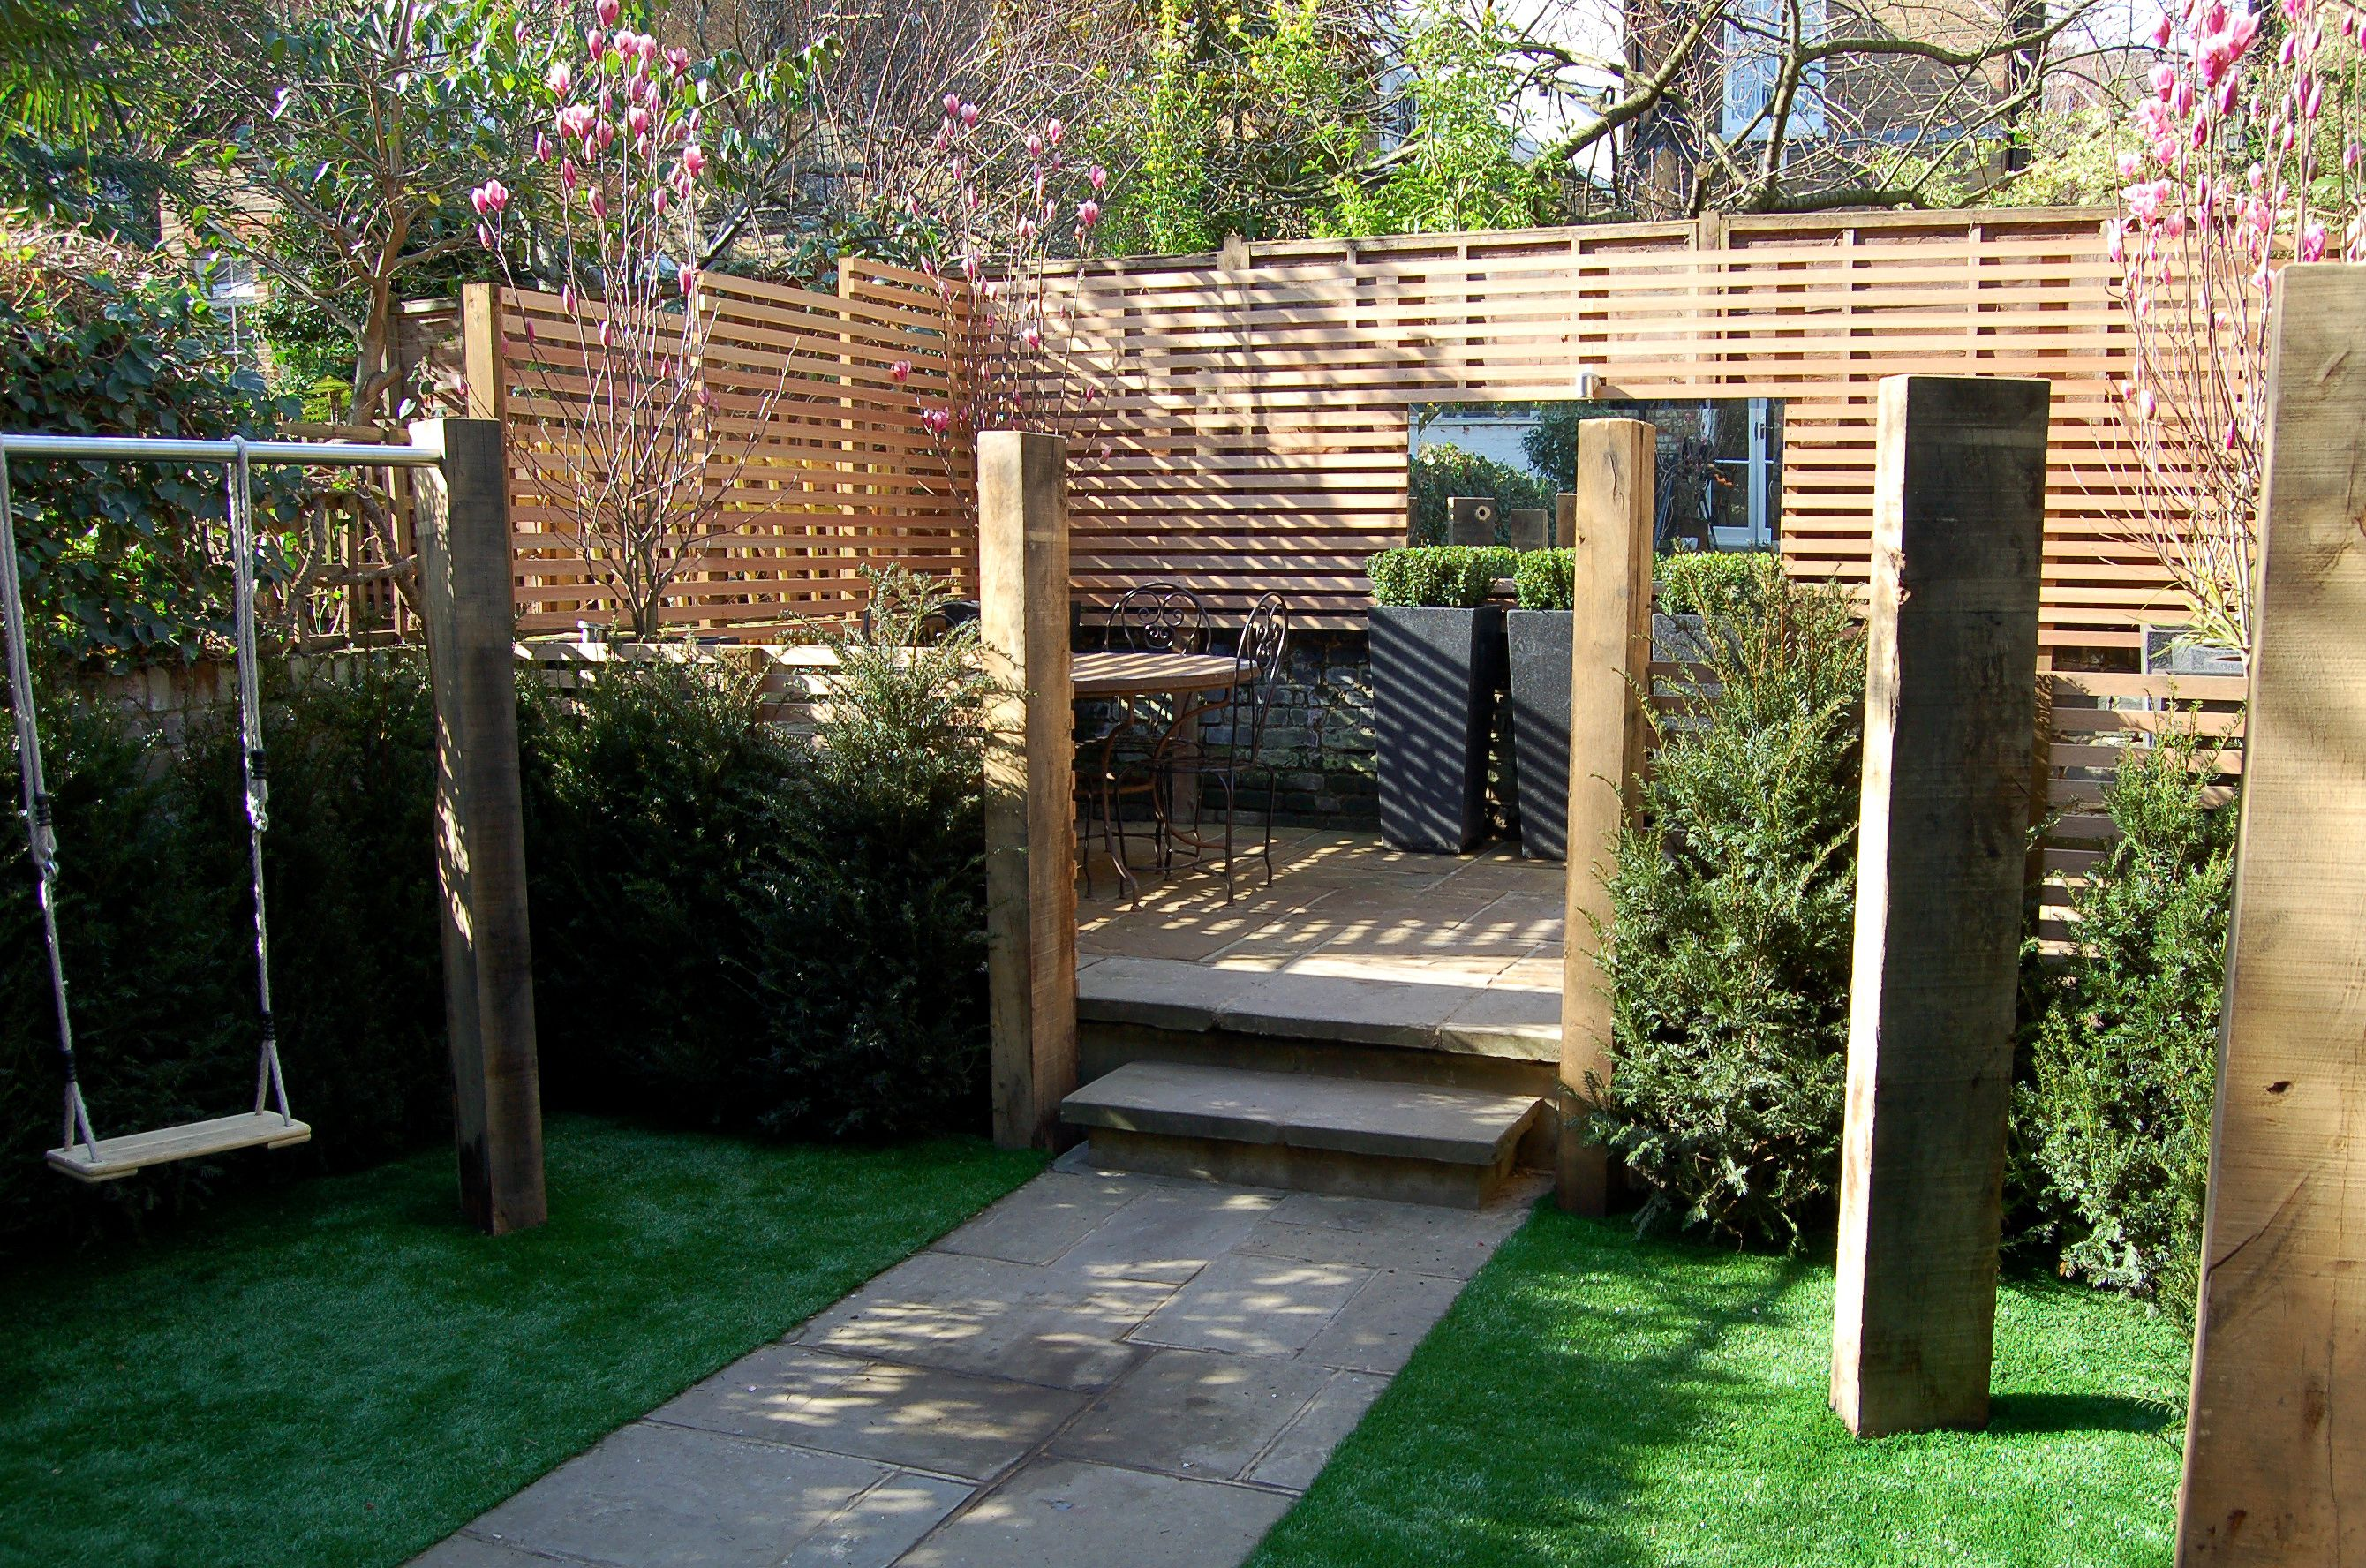 swings monkey bars and a climbing wall incorporated into the